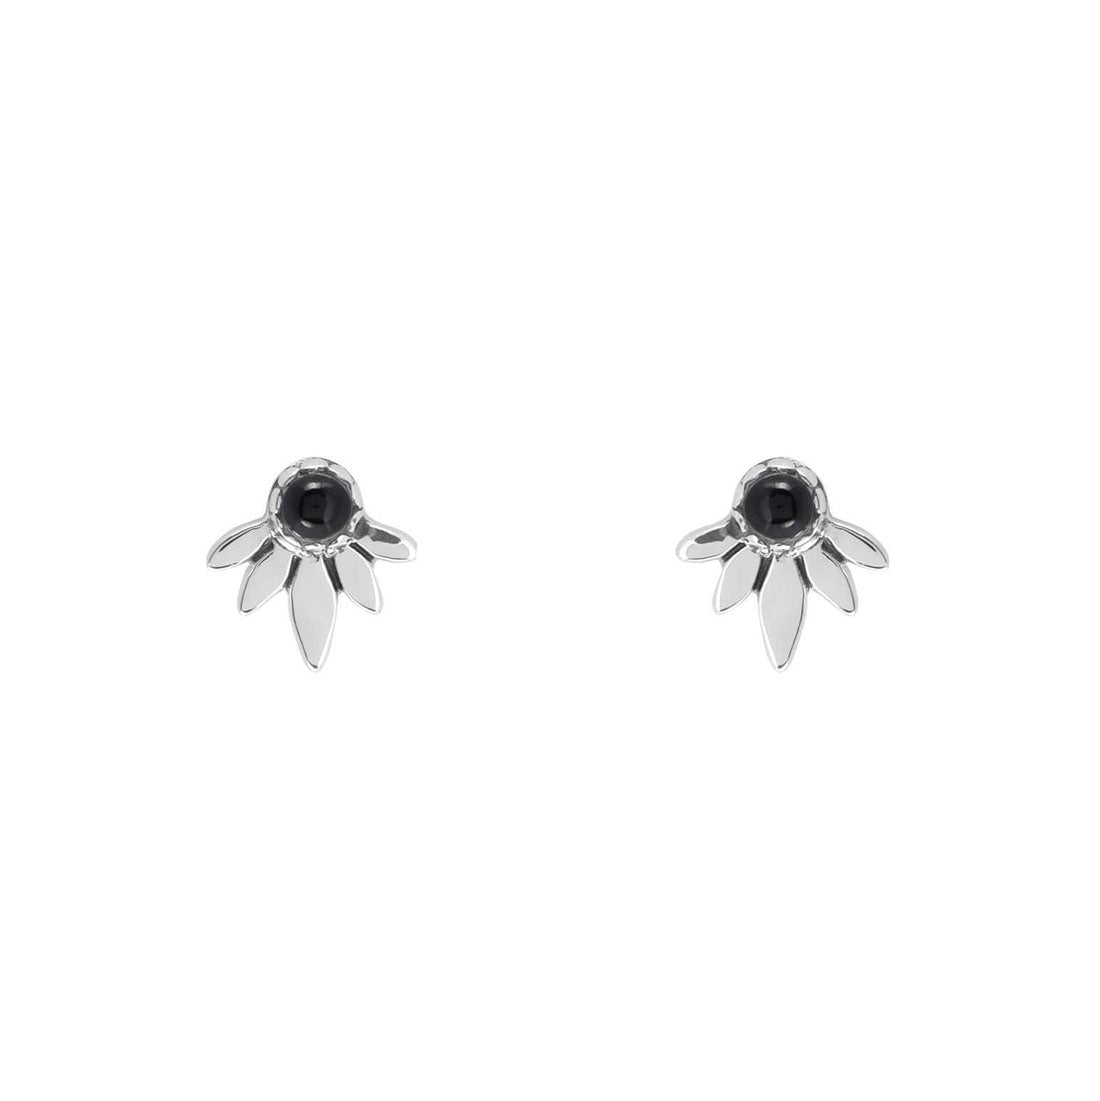 Midsummer Star Earrings Dusk Harvest Onyx Studs